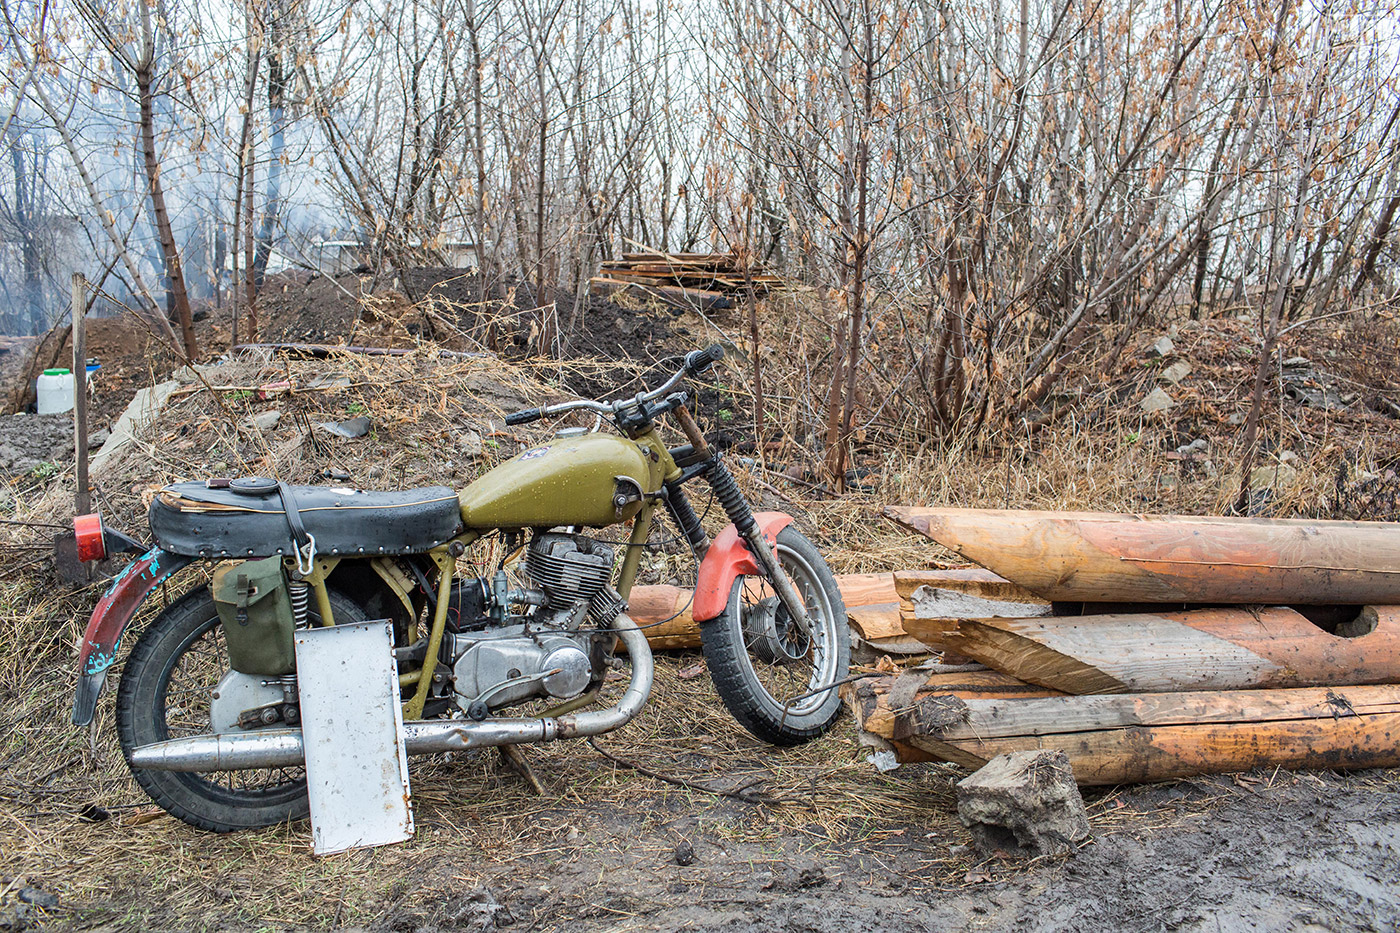 This motorcycle was constructed by a Ukrainian soldier during fighting in Pisky. He broke down various motorcycles and combined the parts, creating this motorcycle. It runs.